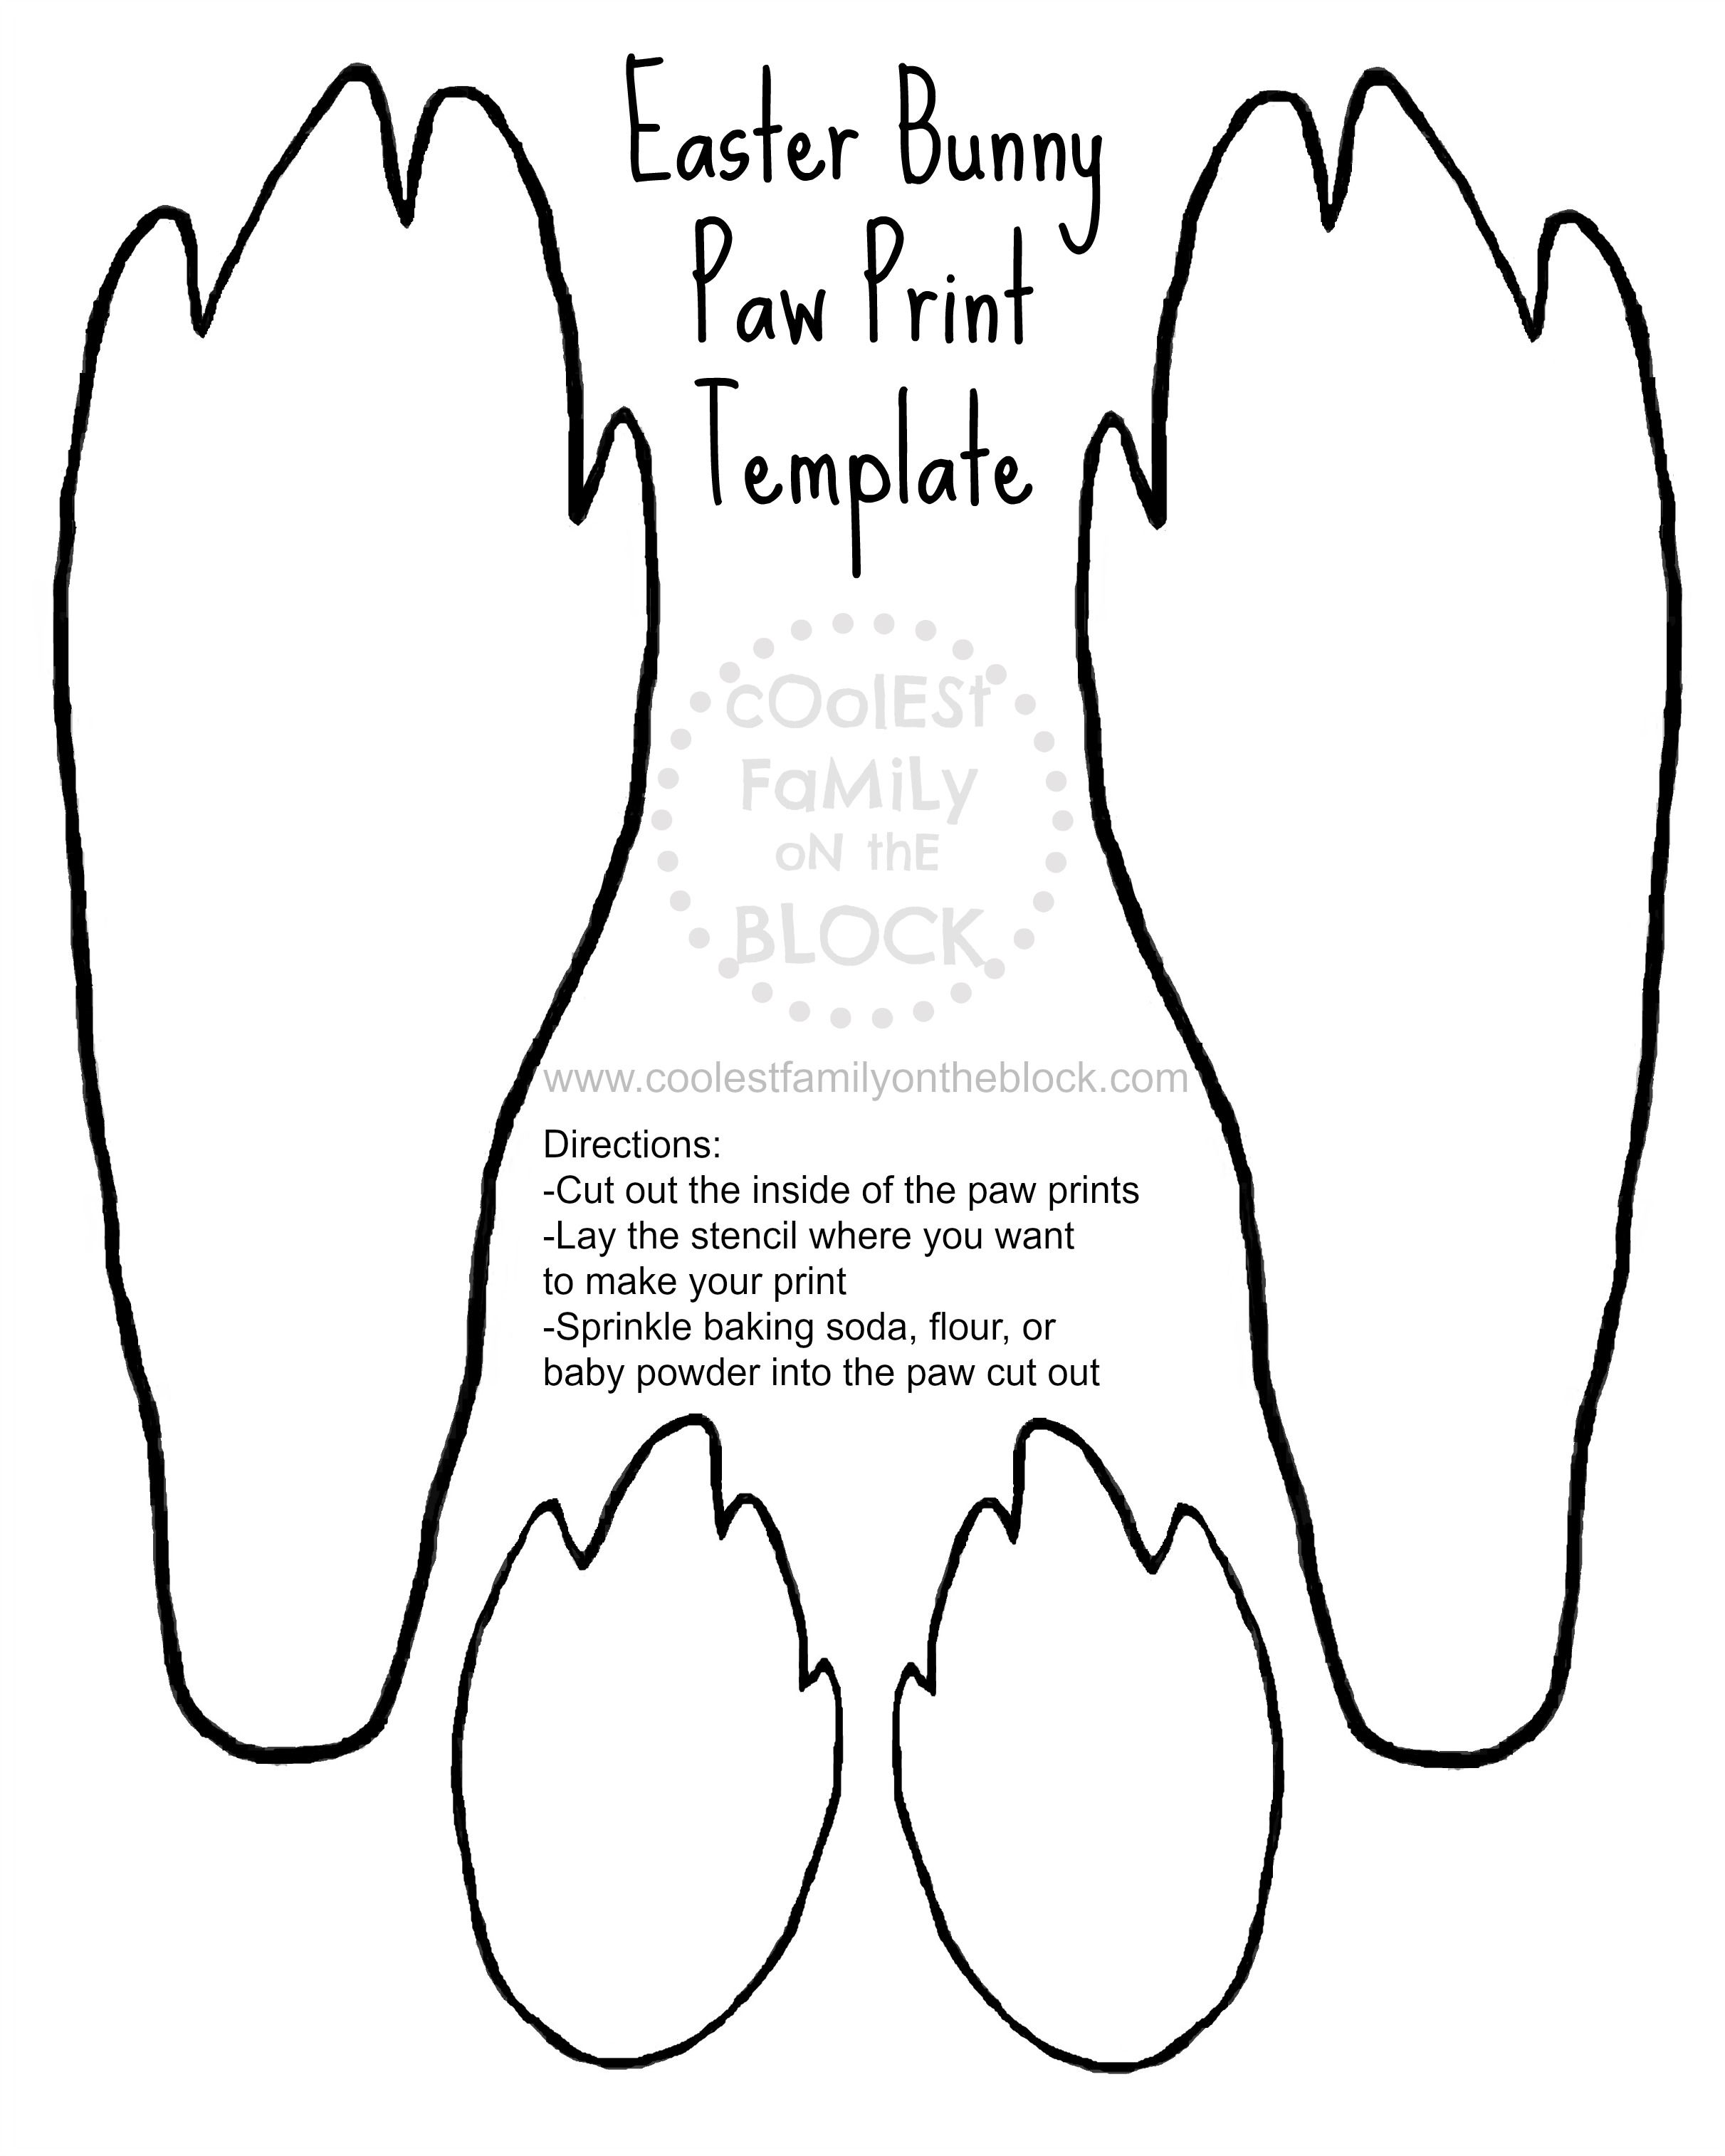 free printable easter bunny paw prints template front and back